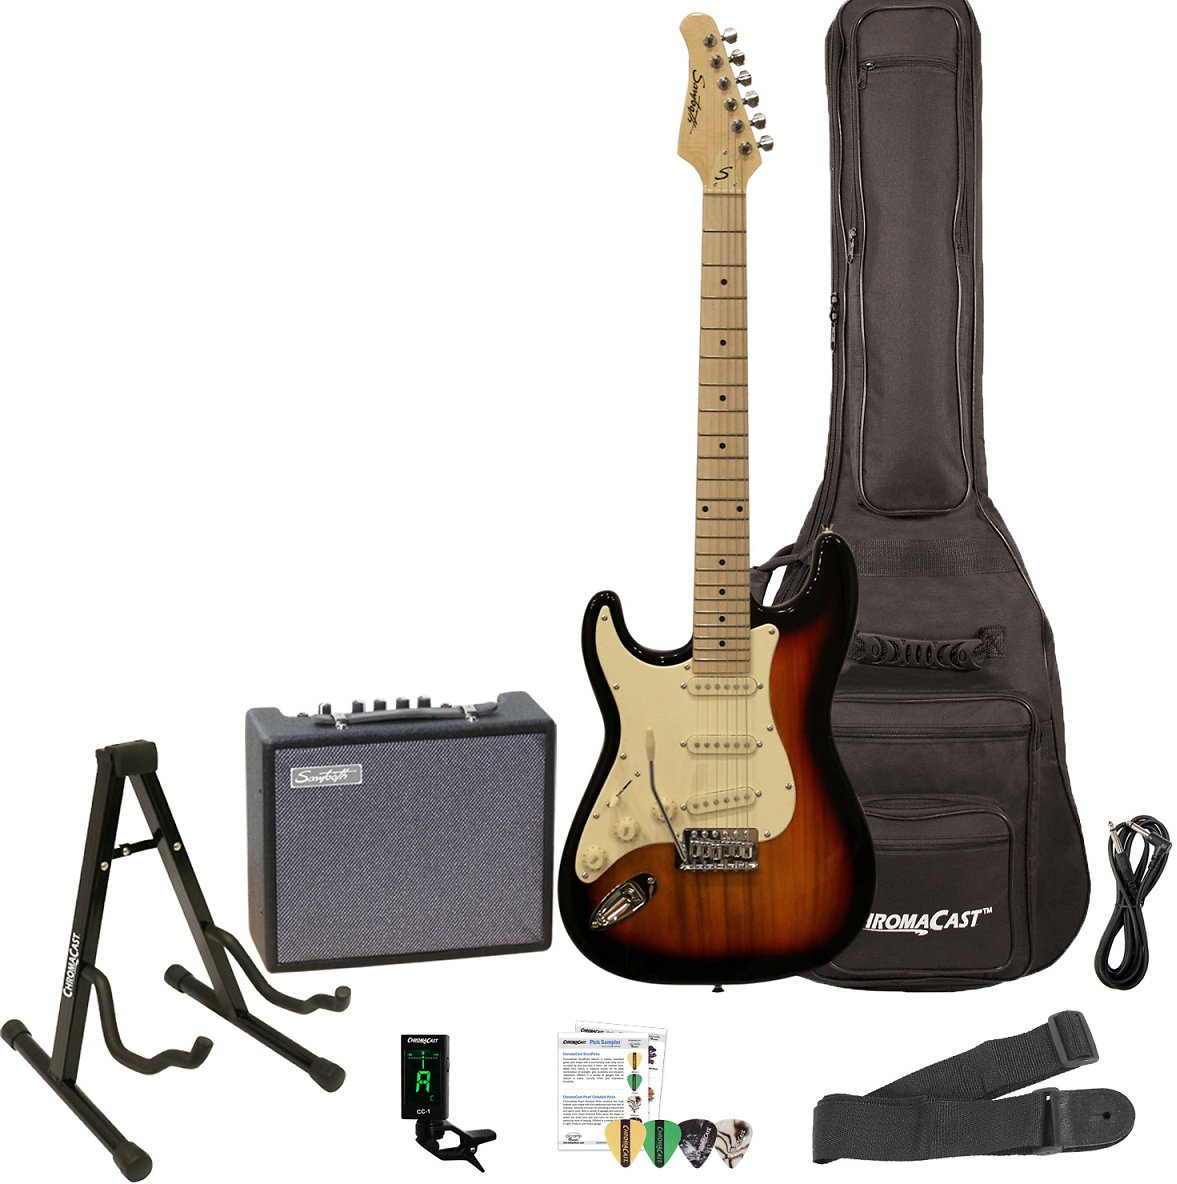 Sawtooth Black ES Series Electric Guitar with Black Pickguard - Includes: Gig Bag, Amp, Picks, Tuner, Strap, Stand, Cable, and G